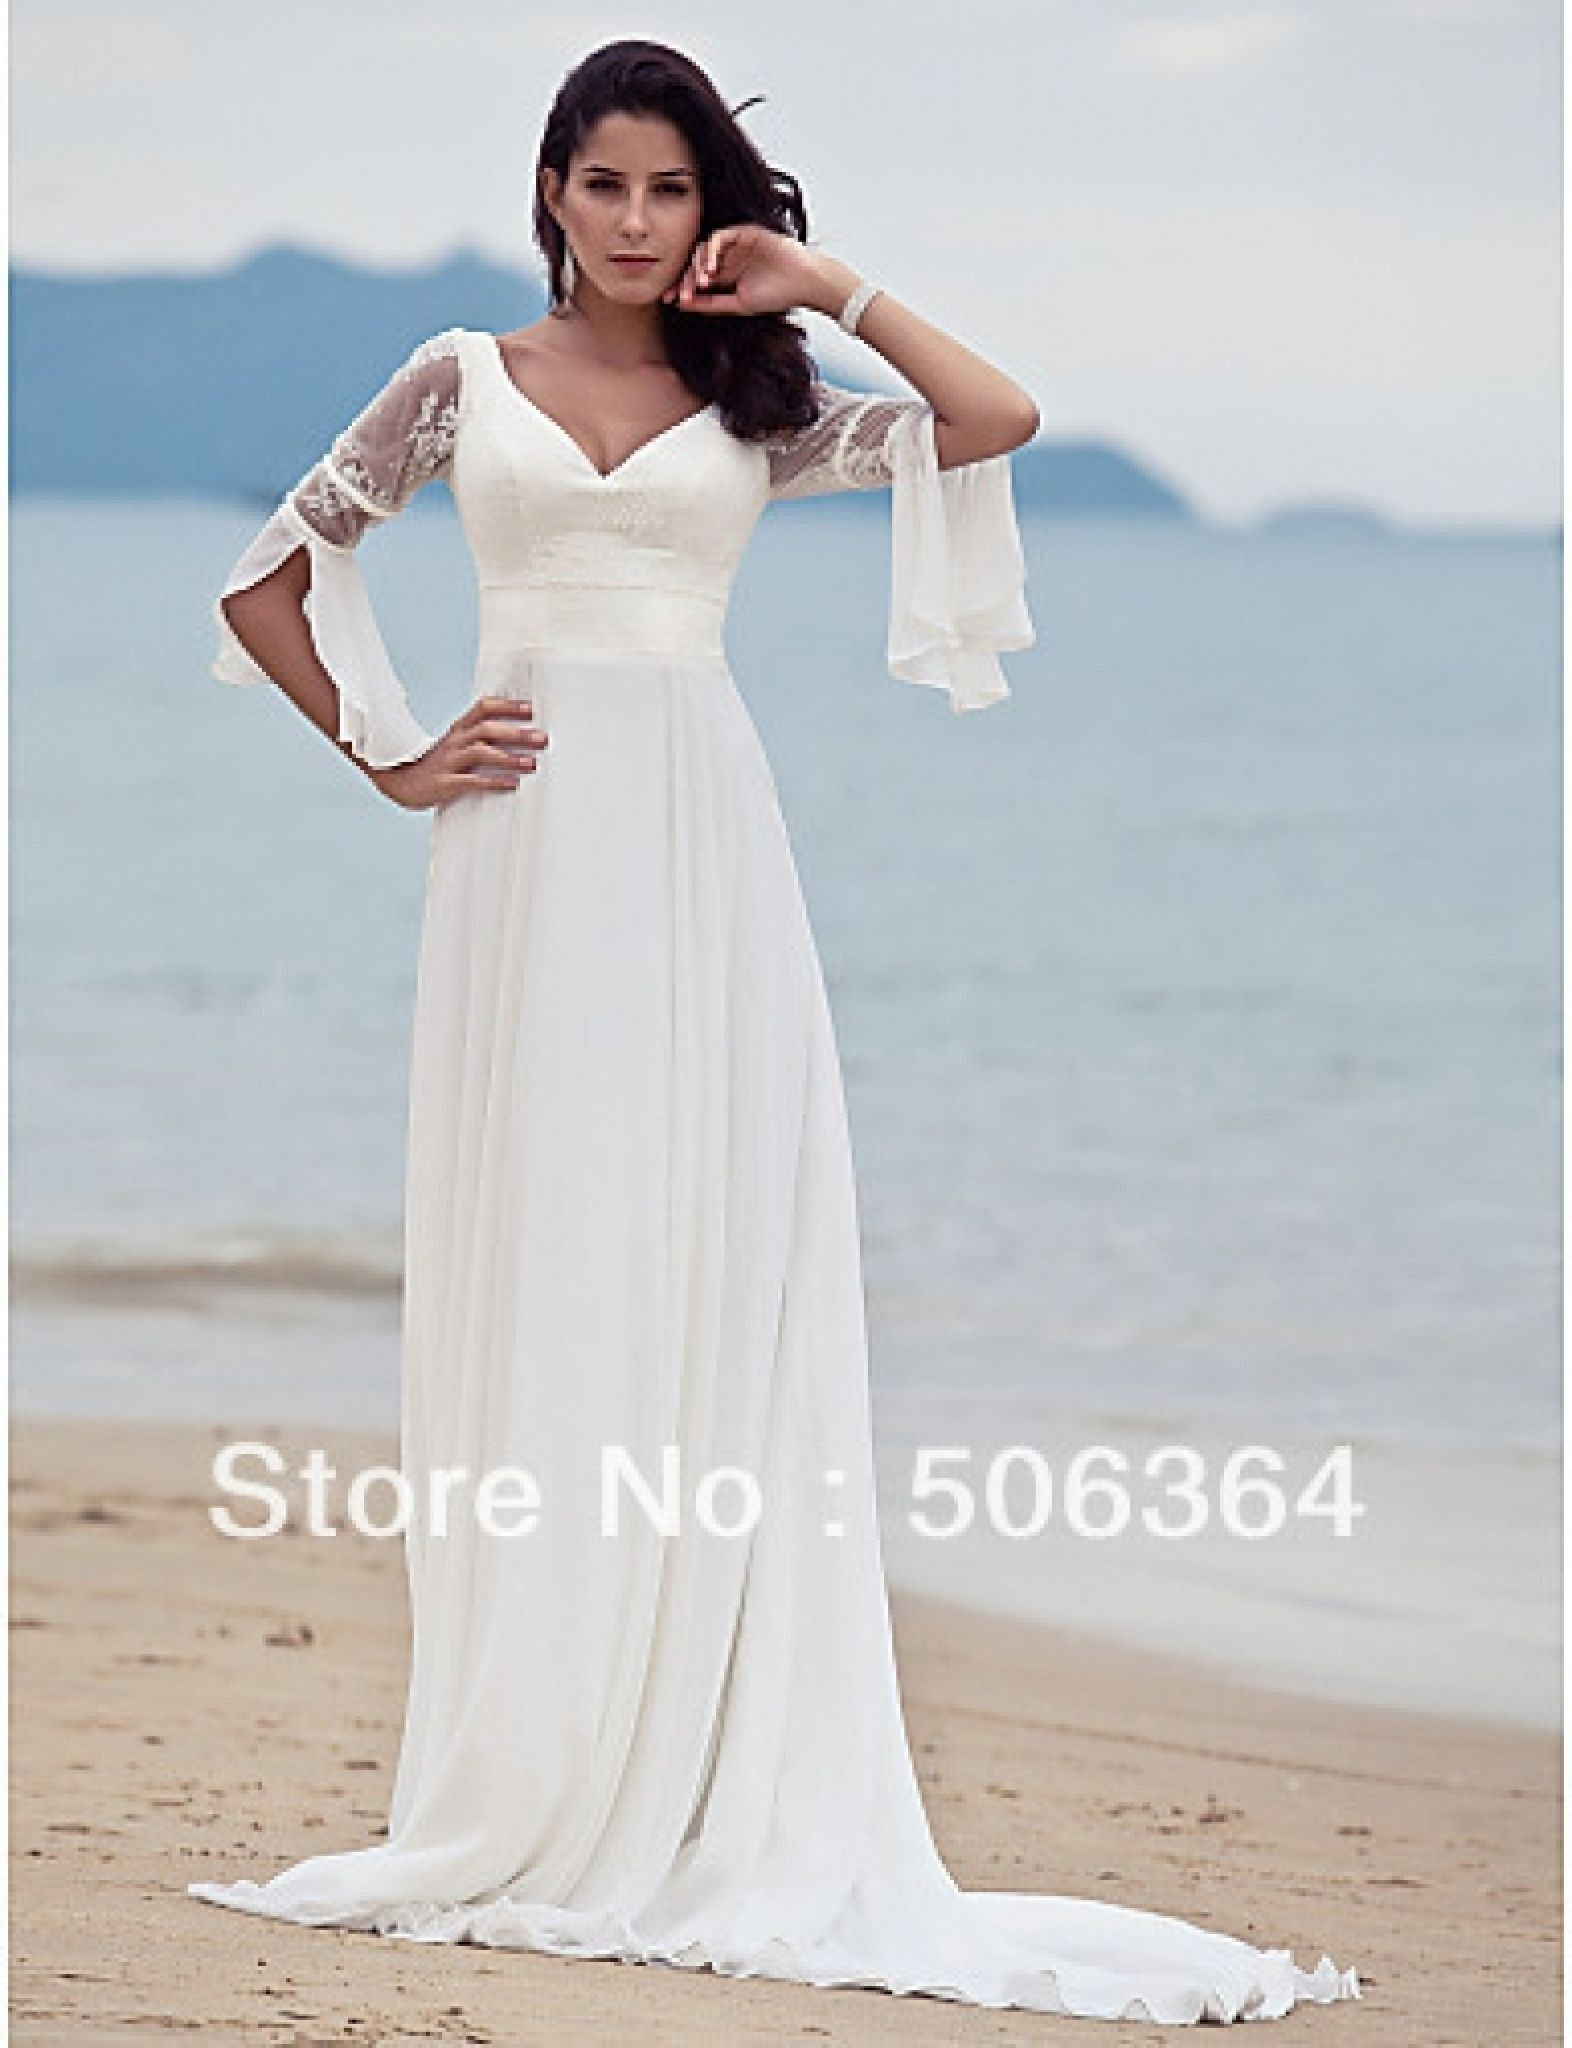 Enchanting Wedding Dresses For Women Over 40 Picture Collection ...